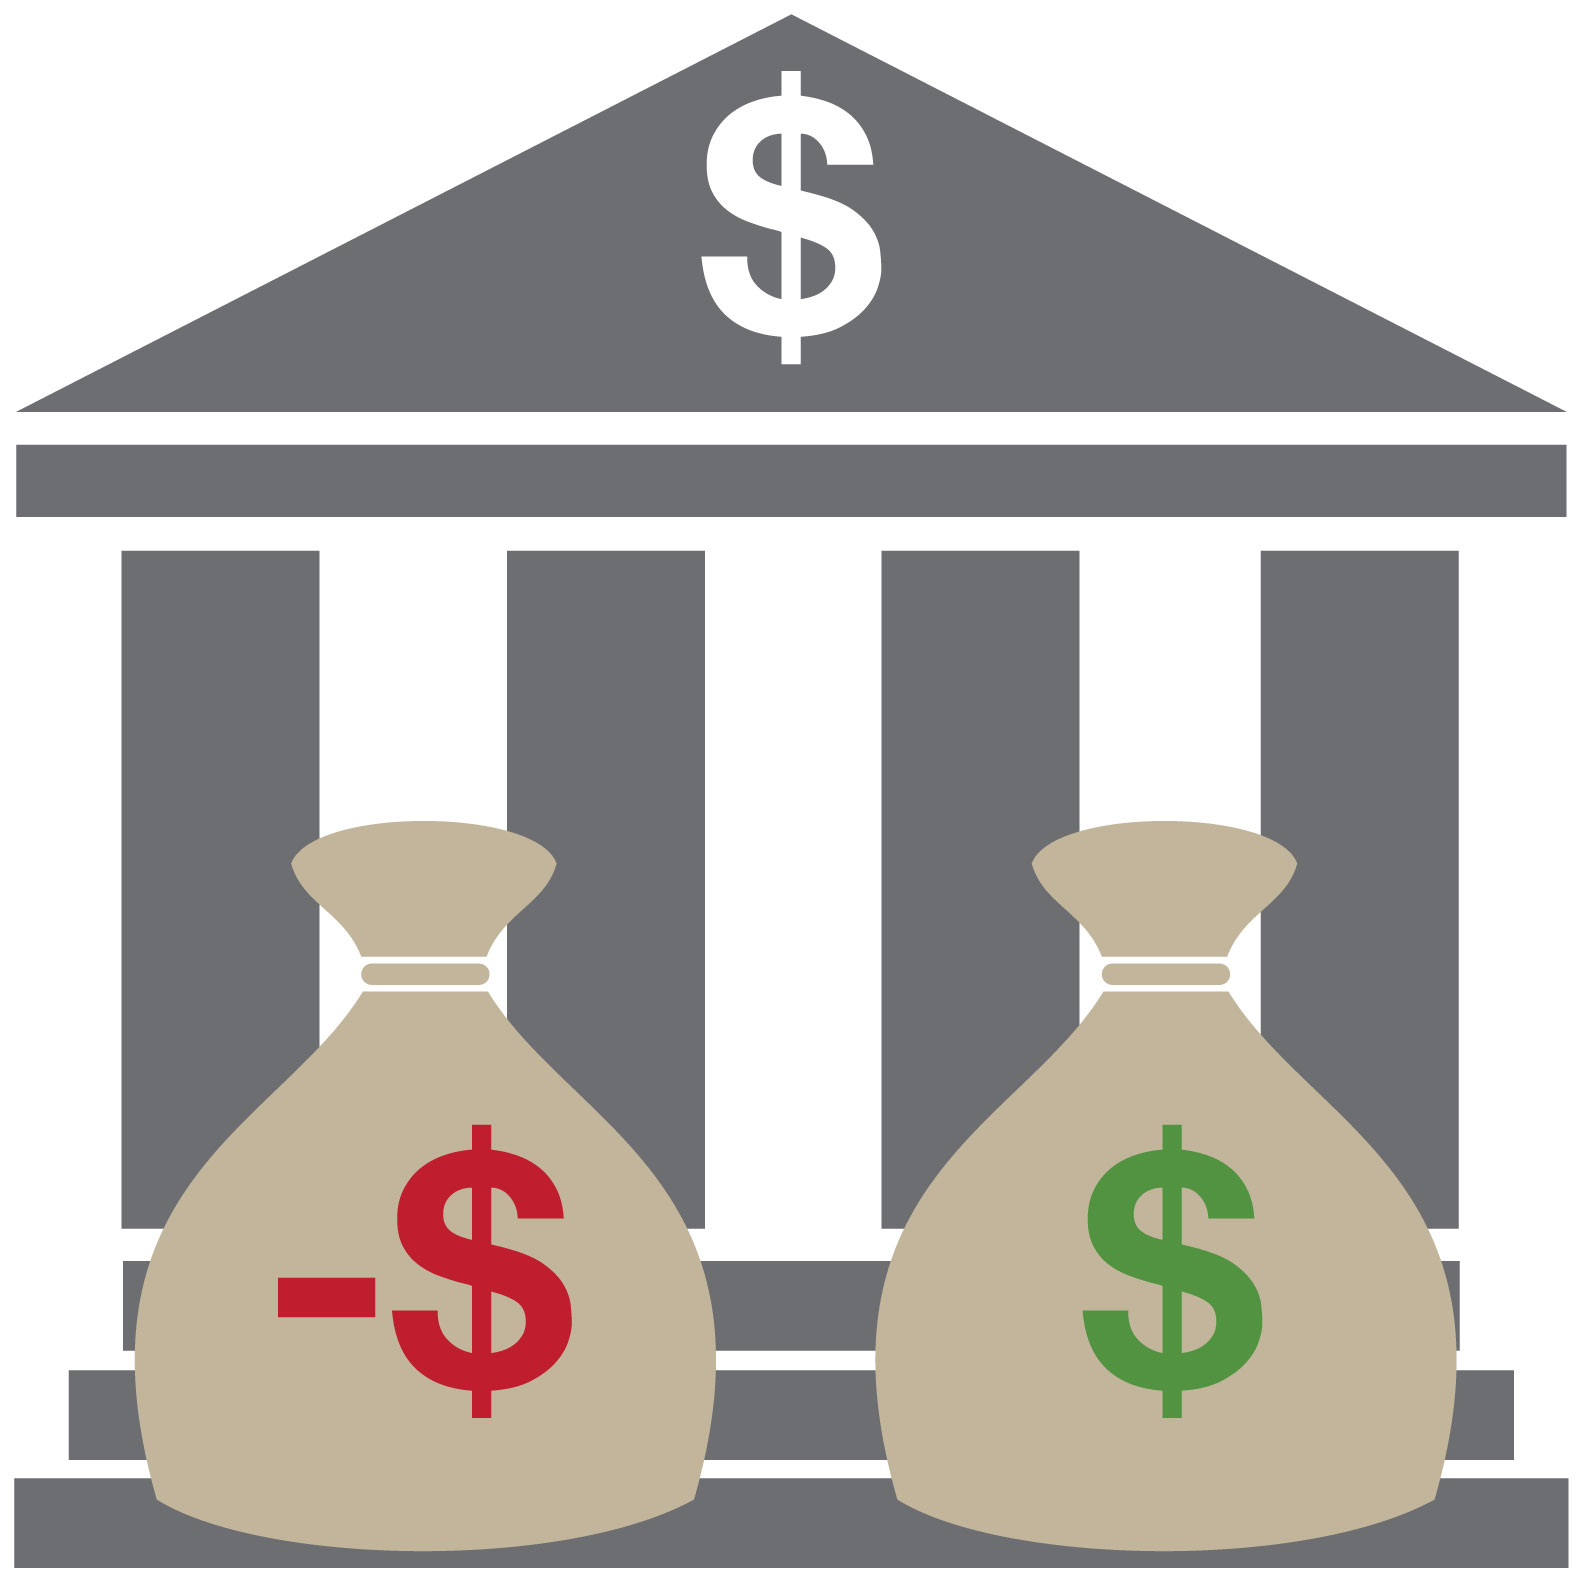 Bank clipart financial institution. Accounts for bankrupt people